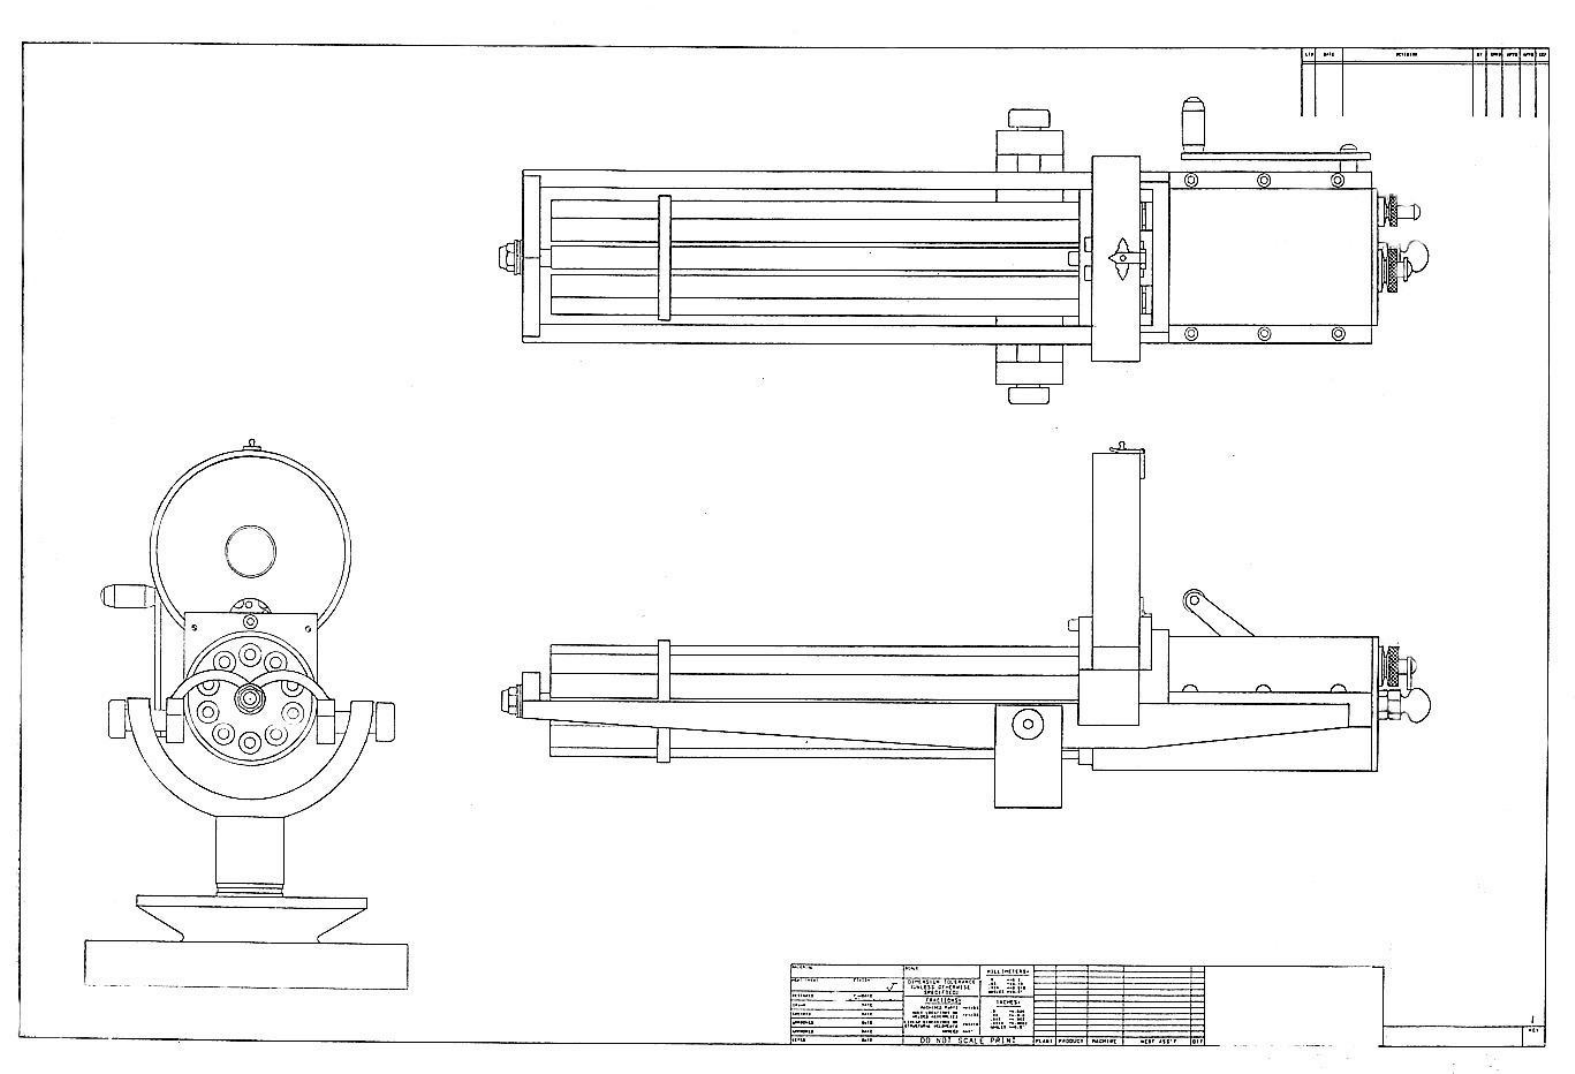 Gatling Gun Blueprints pdf